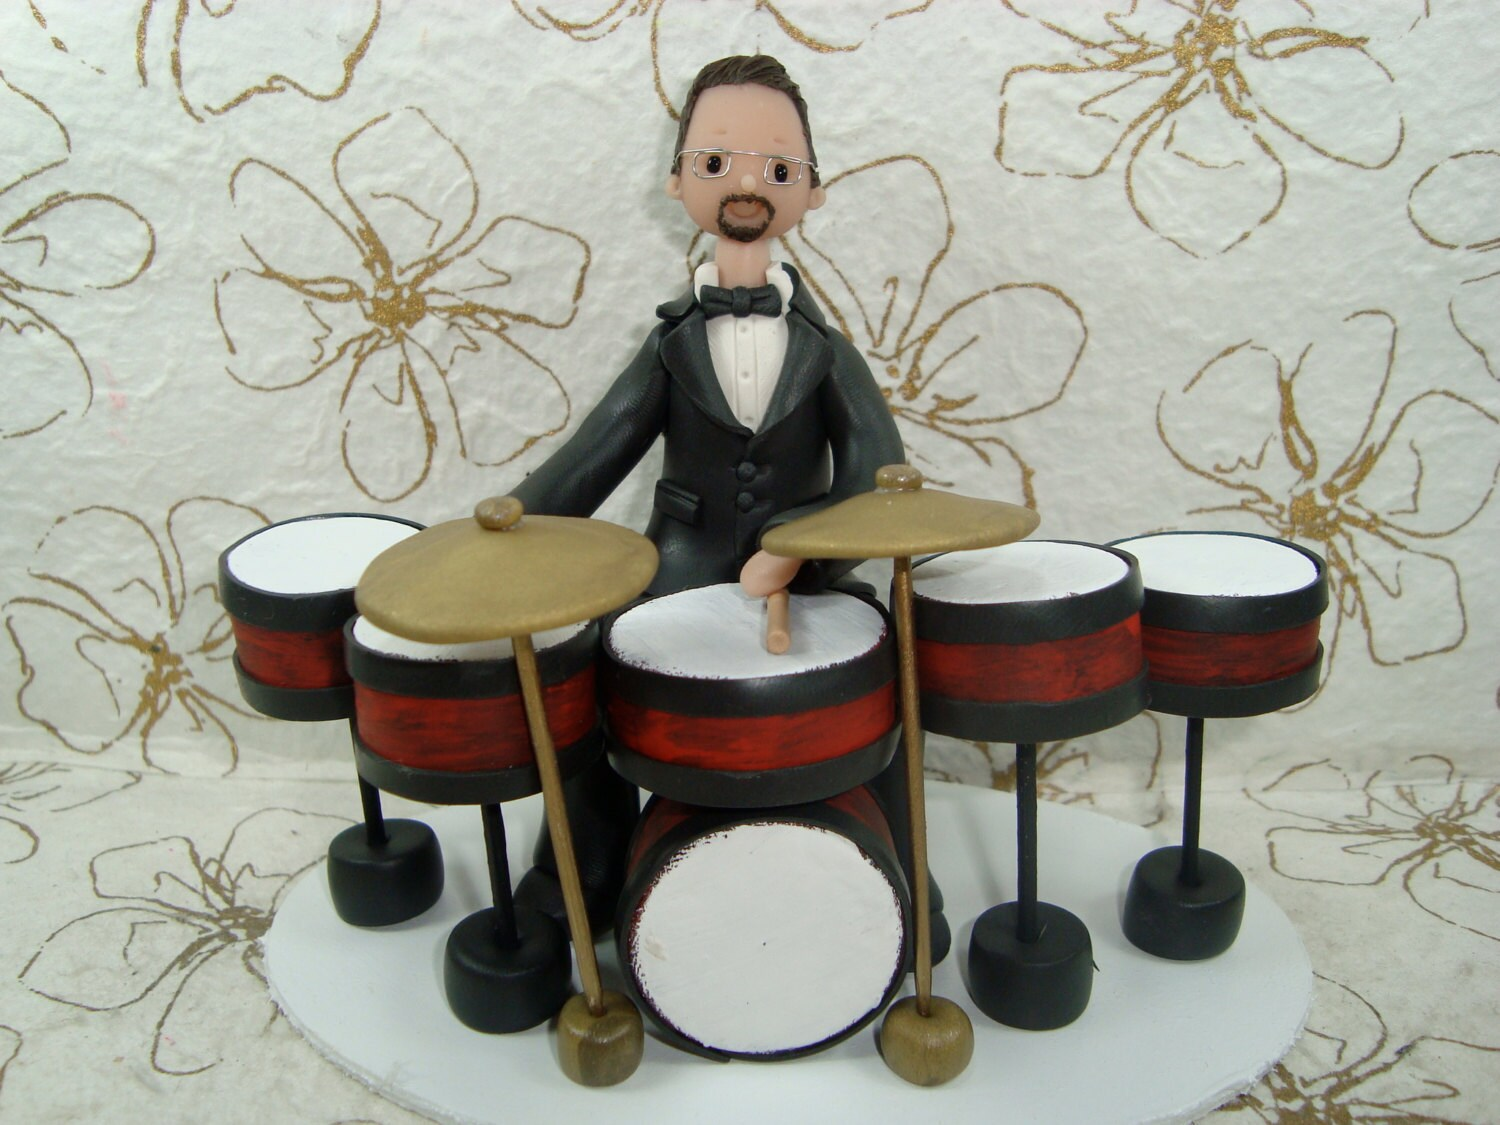 Single Figure with Drums Cake Topper by mudcards on Etsy